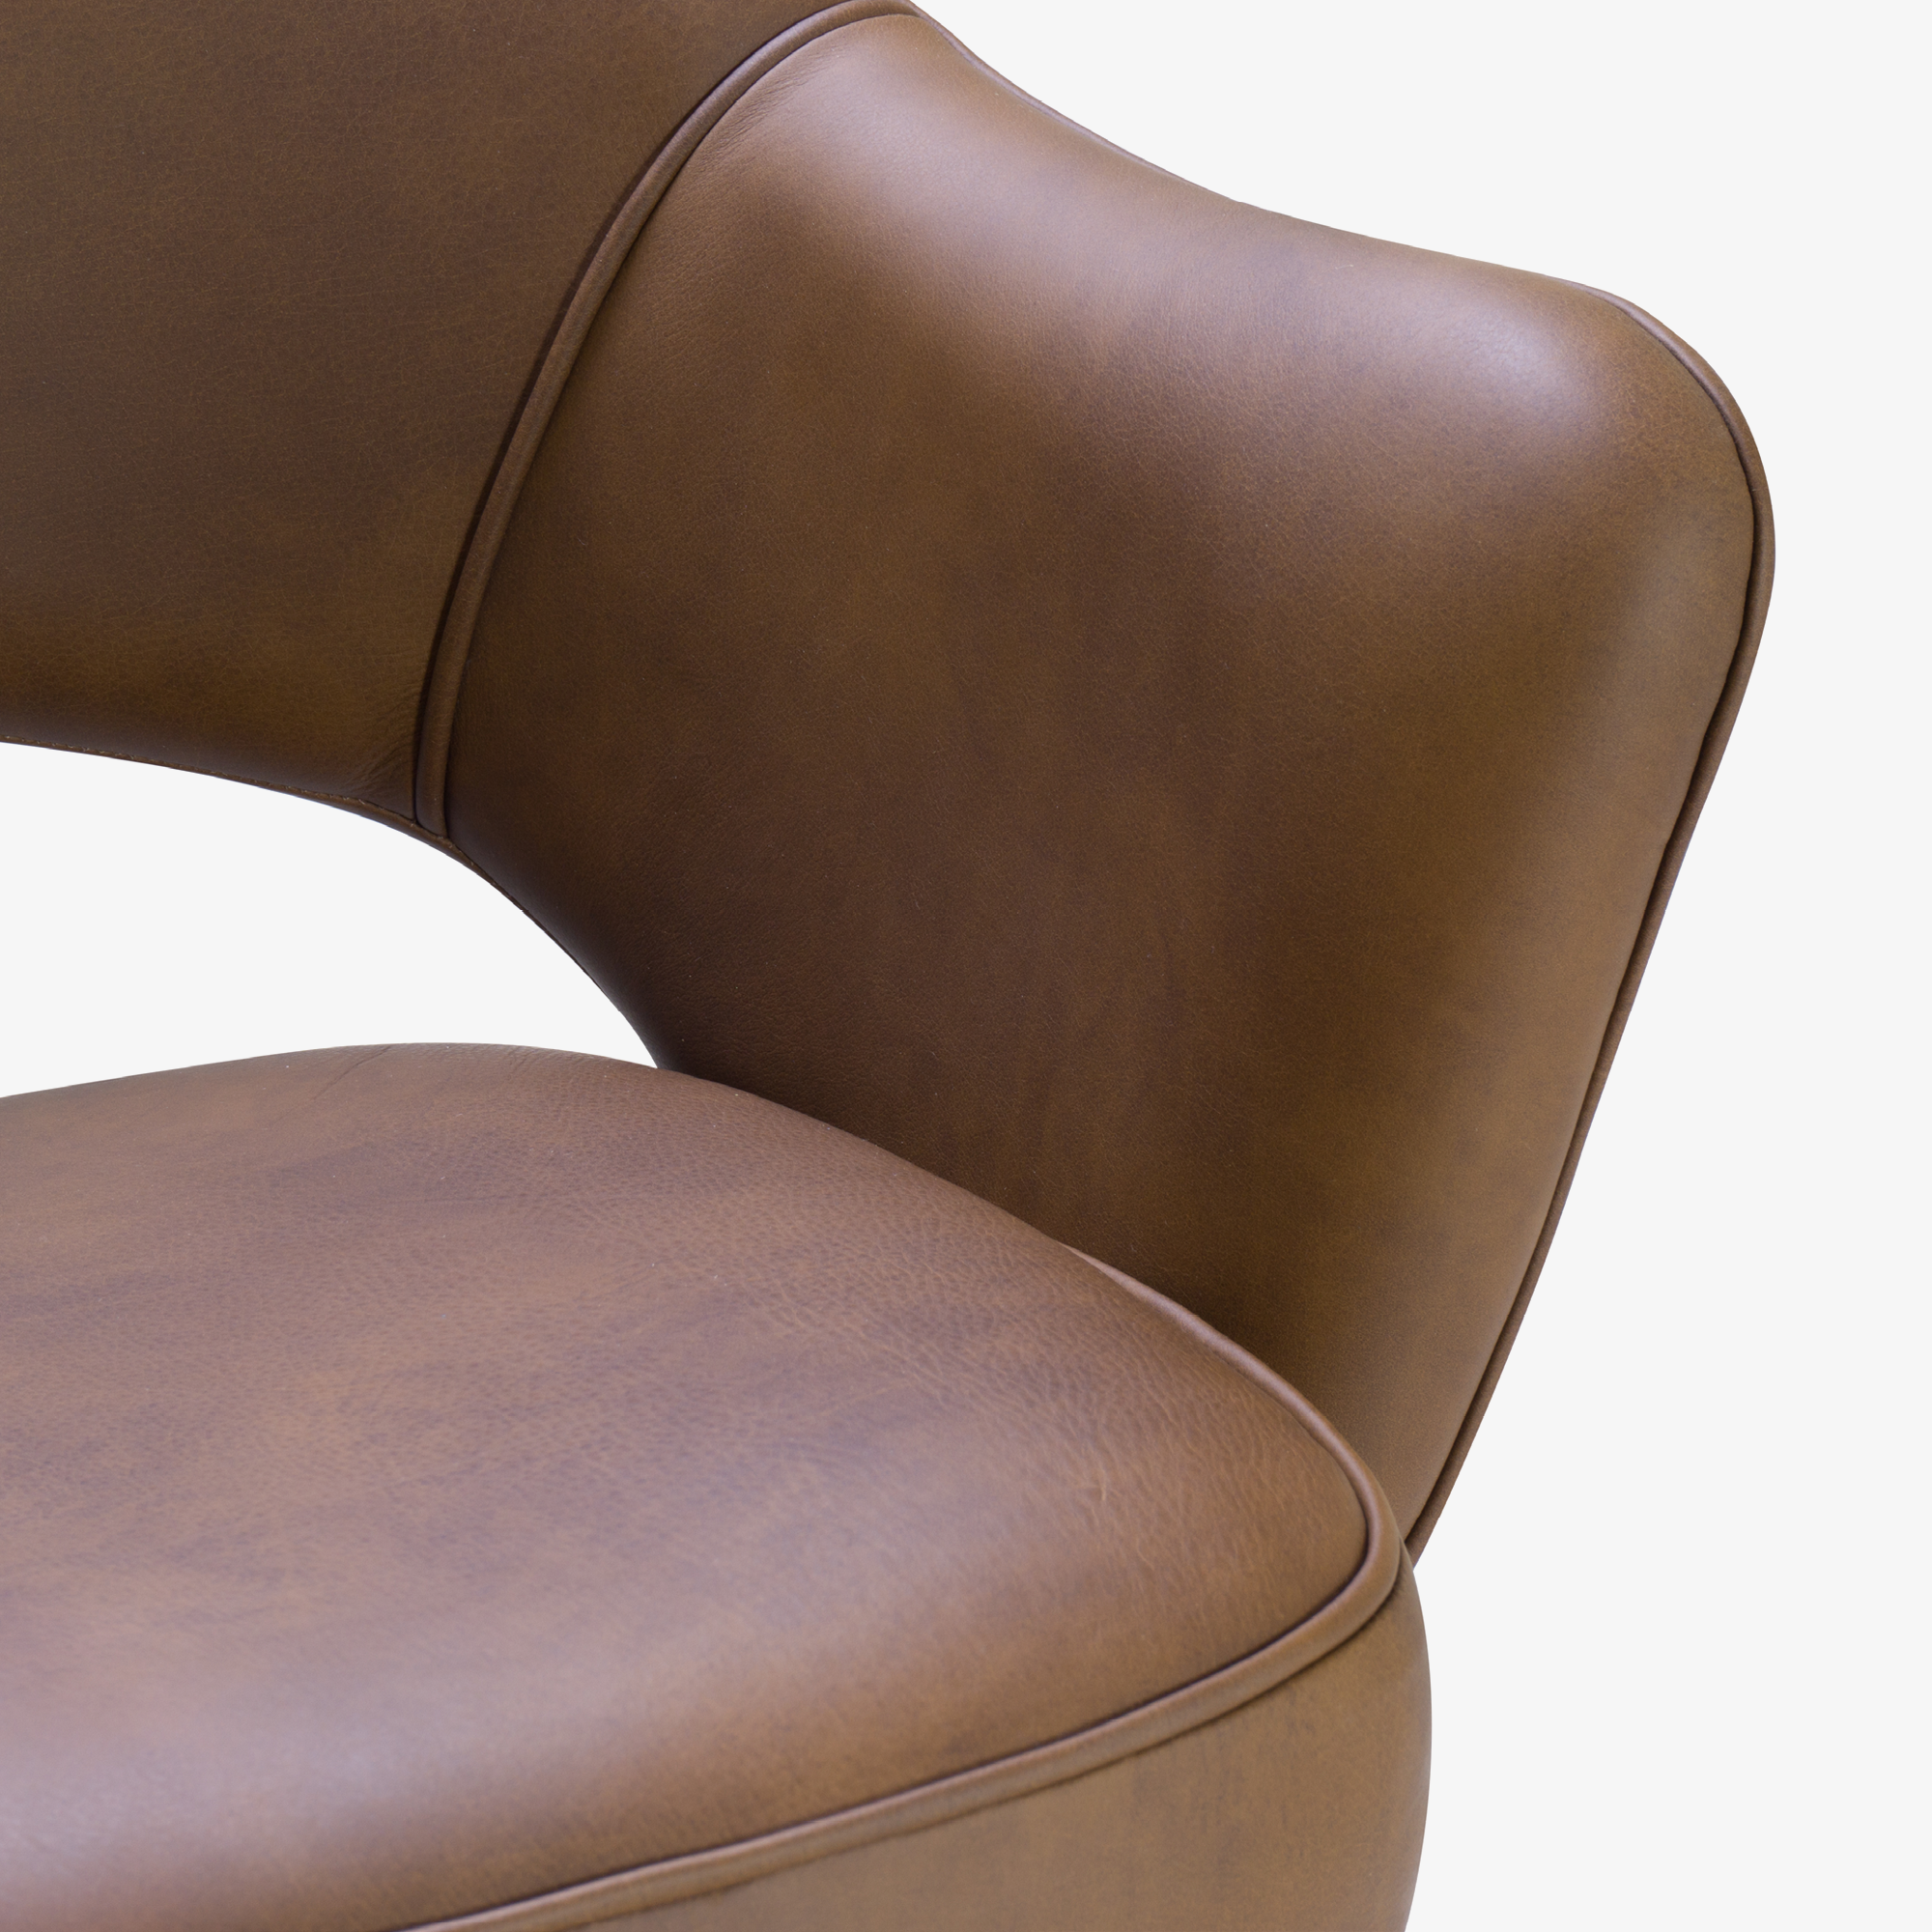 Saarinen Executive Arm Chair in Saddle Leather, Swivel Base6.png